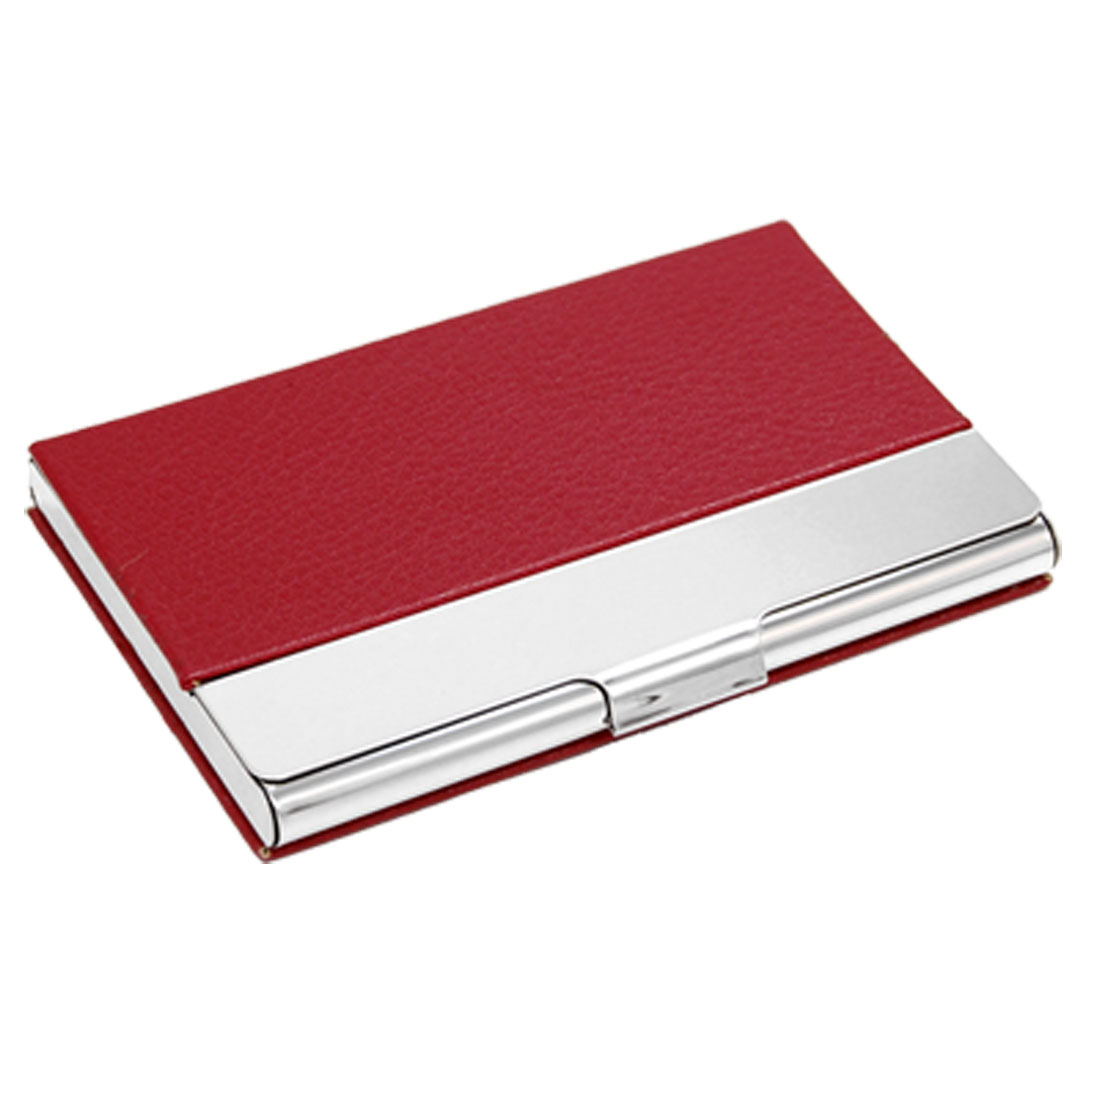 Metal Frame Business Credit Card Holder Case Red Silvery